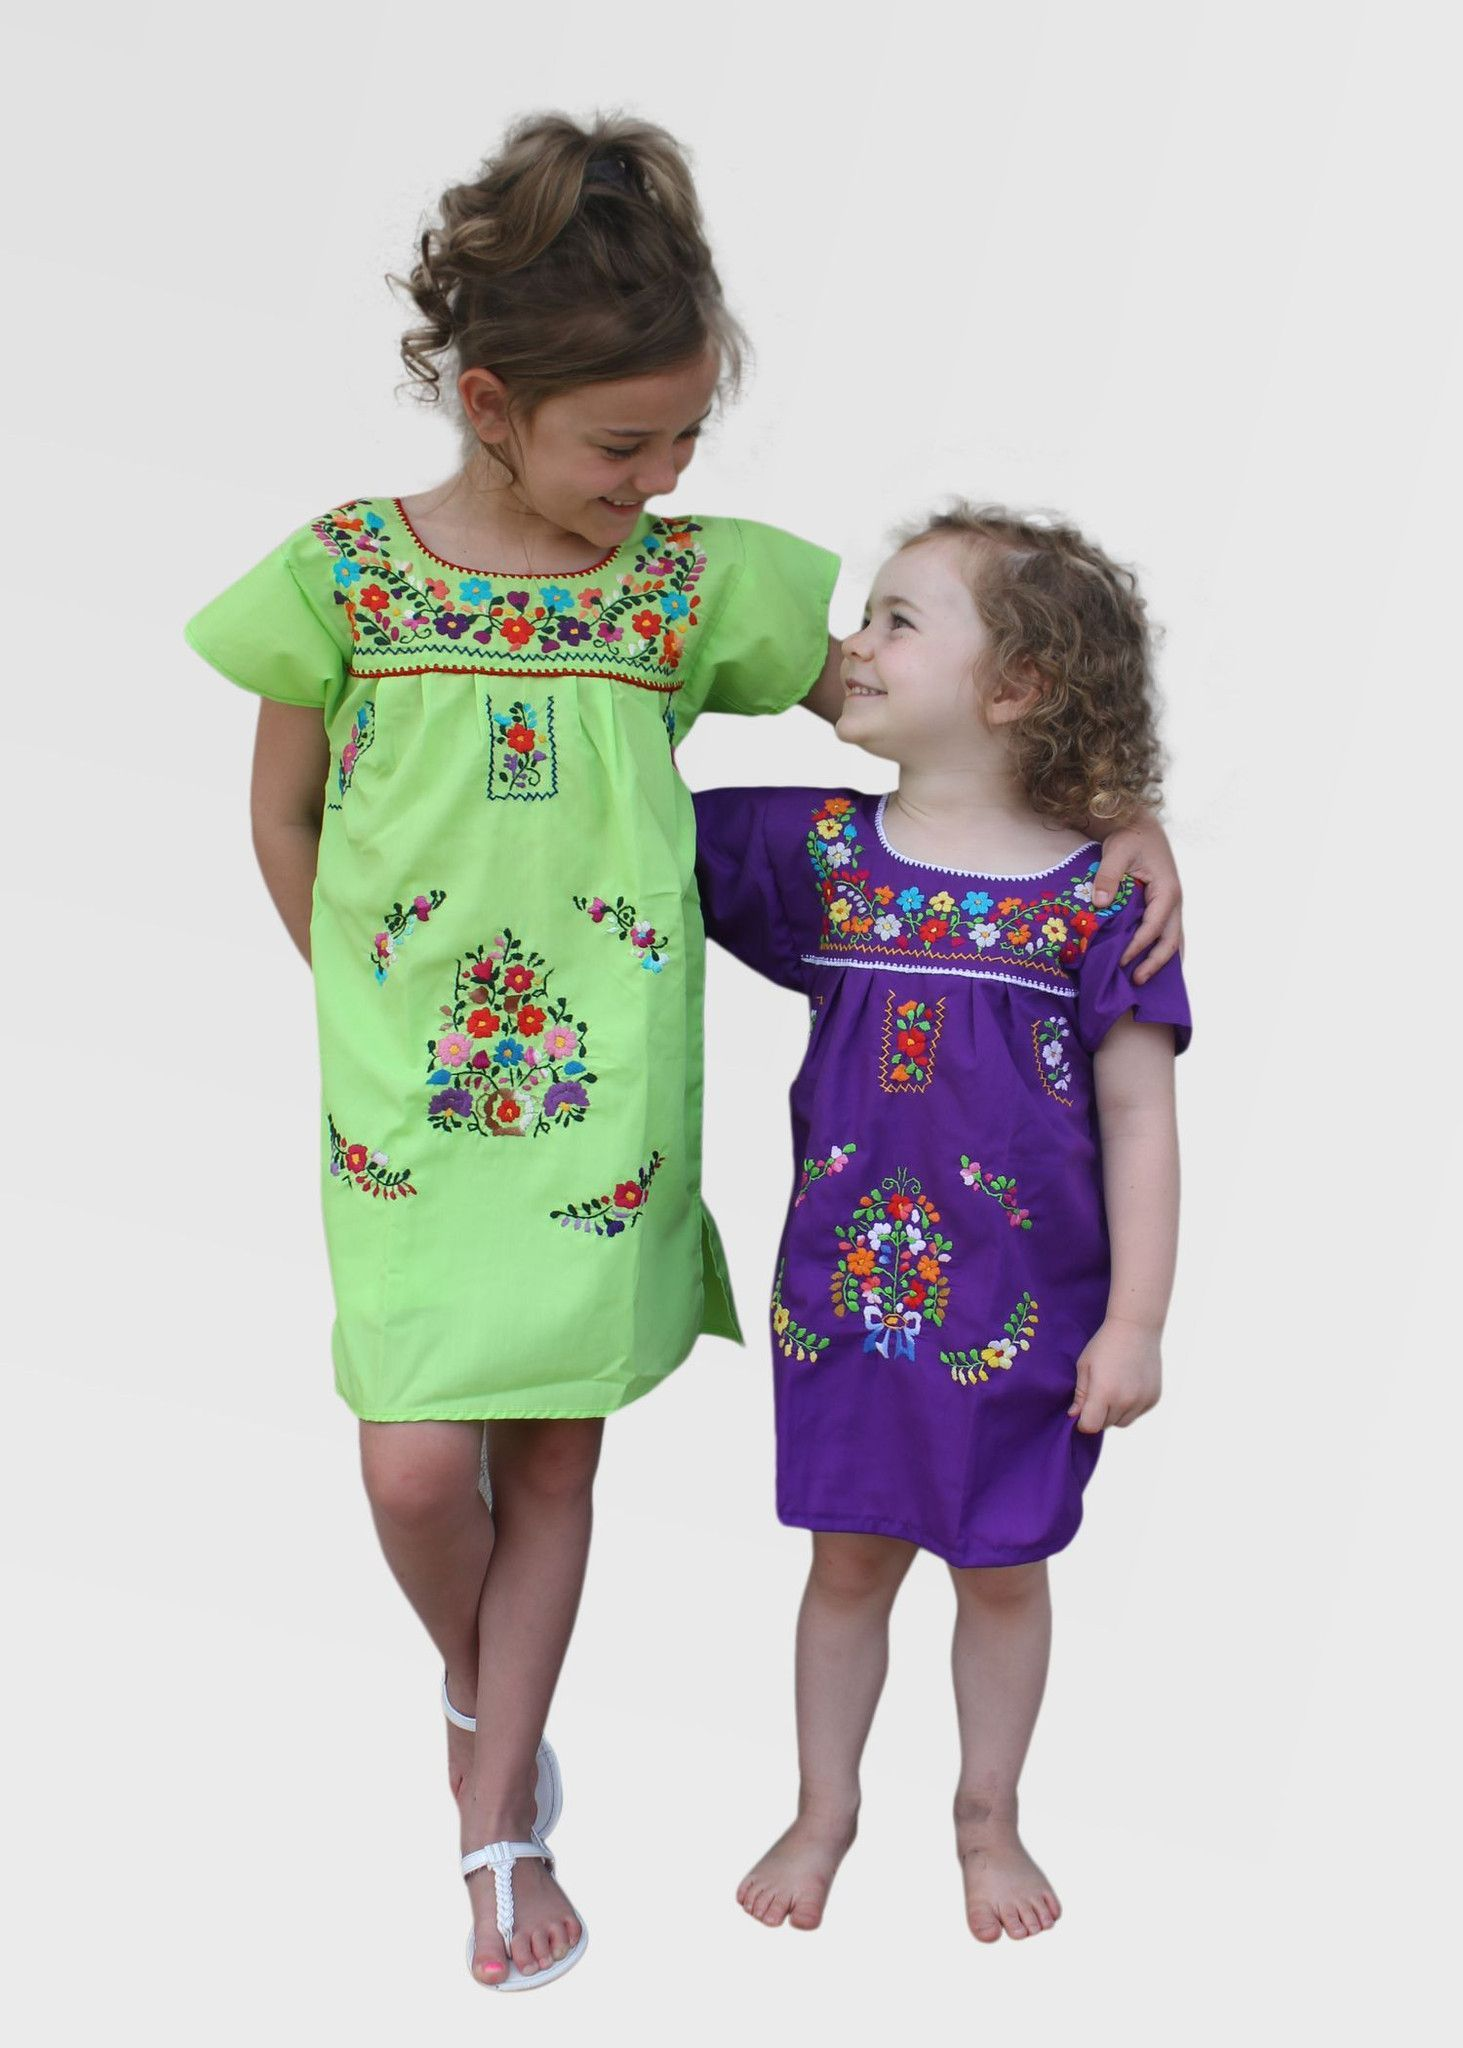 623cb54db8 Adorable hand embroidered Mexican dress with colorful floral pattern on a  lightweight cotton dress. Great